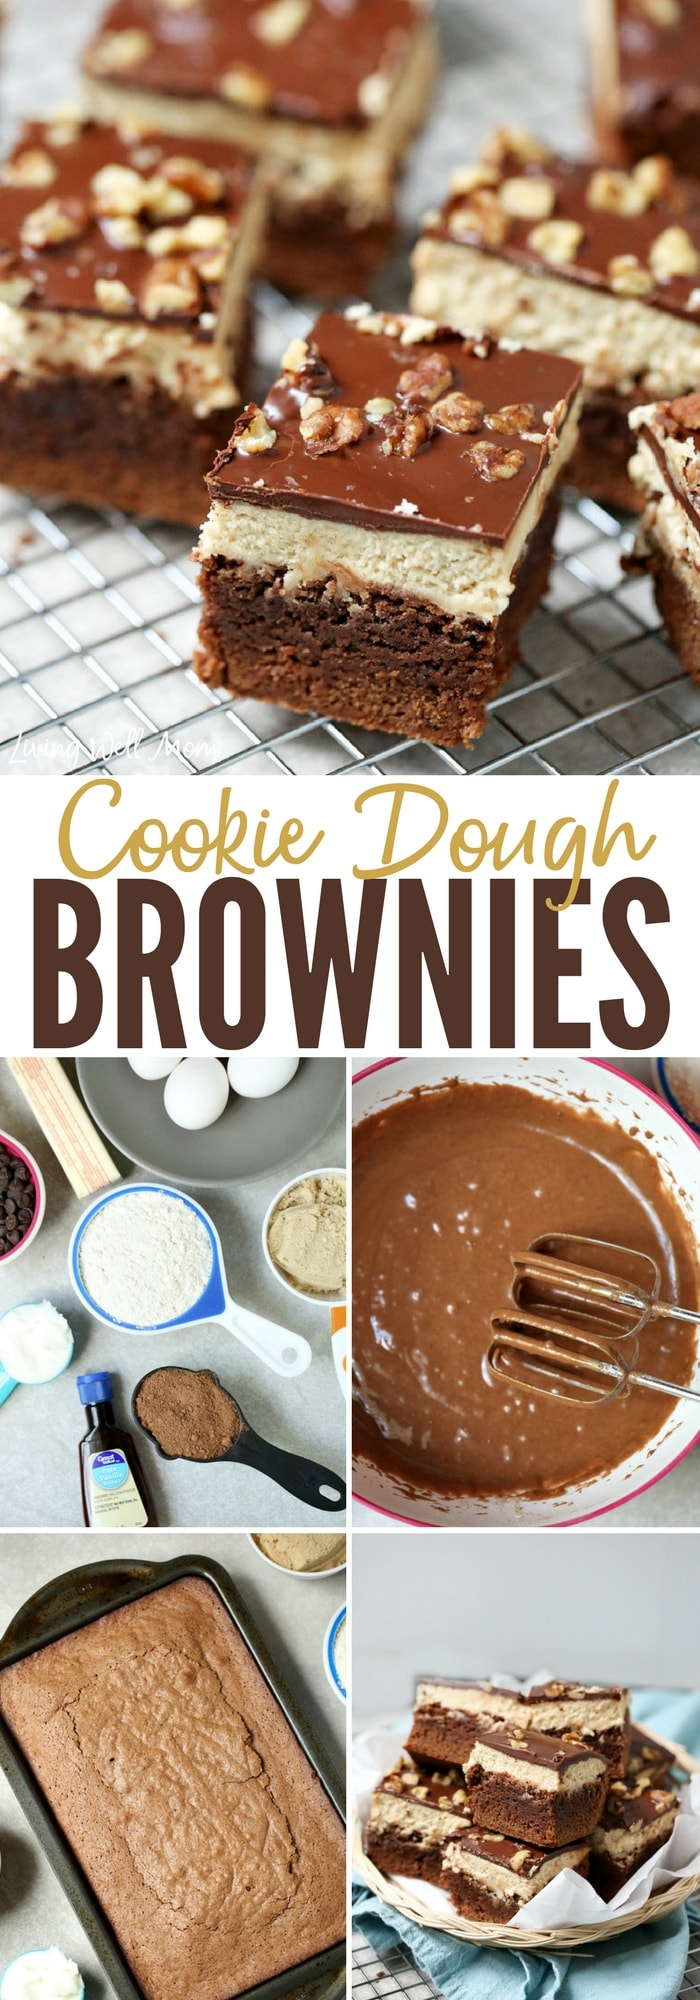 Yummy Cookie Dough Brownies